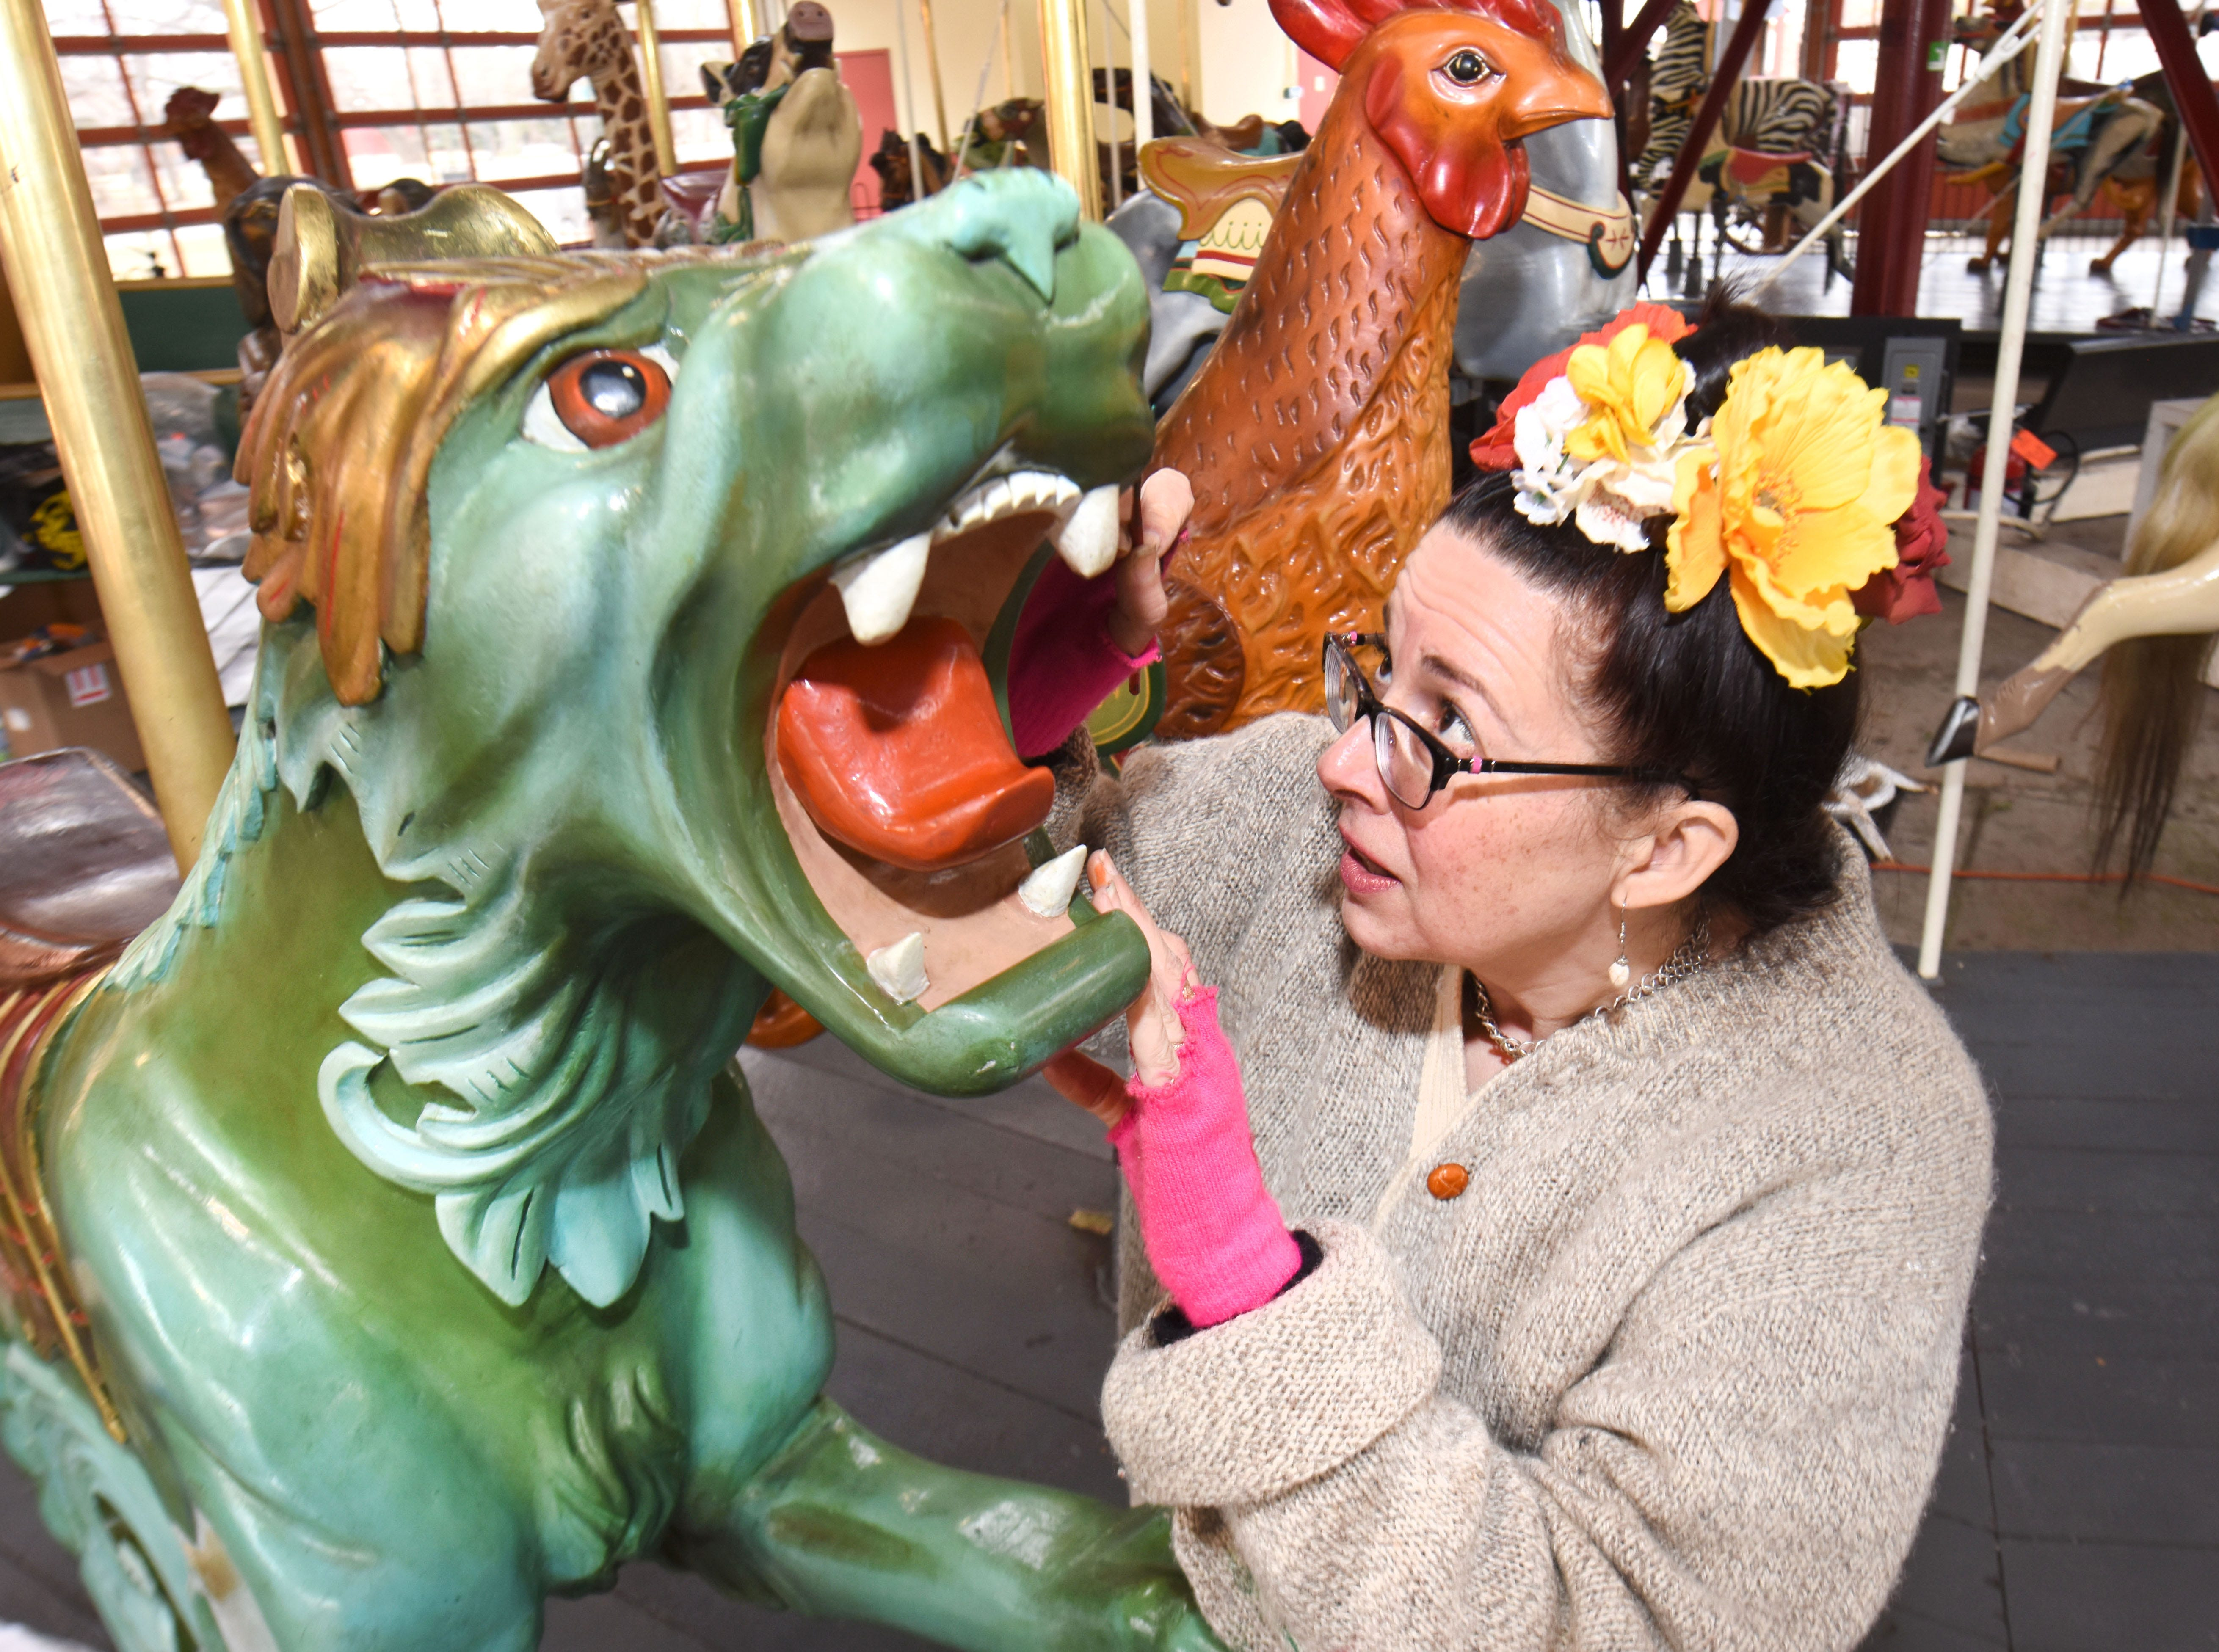 Julie Fournier, historic restoration artist,  works  on one of her favorite carousel  figure's, a dragon, at Greenfield Village in Dearborn on Thursday, March 14, 2019.